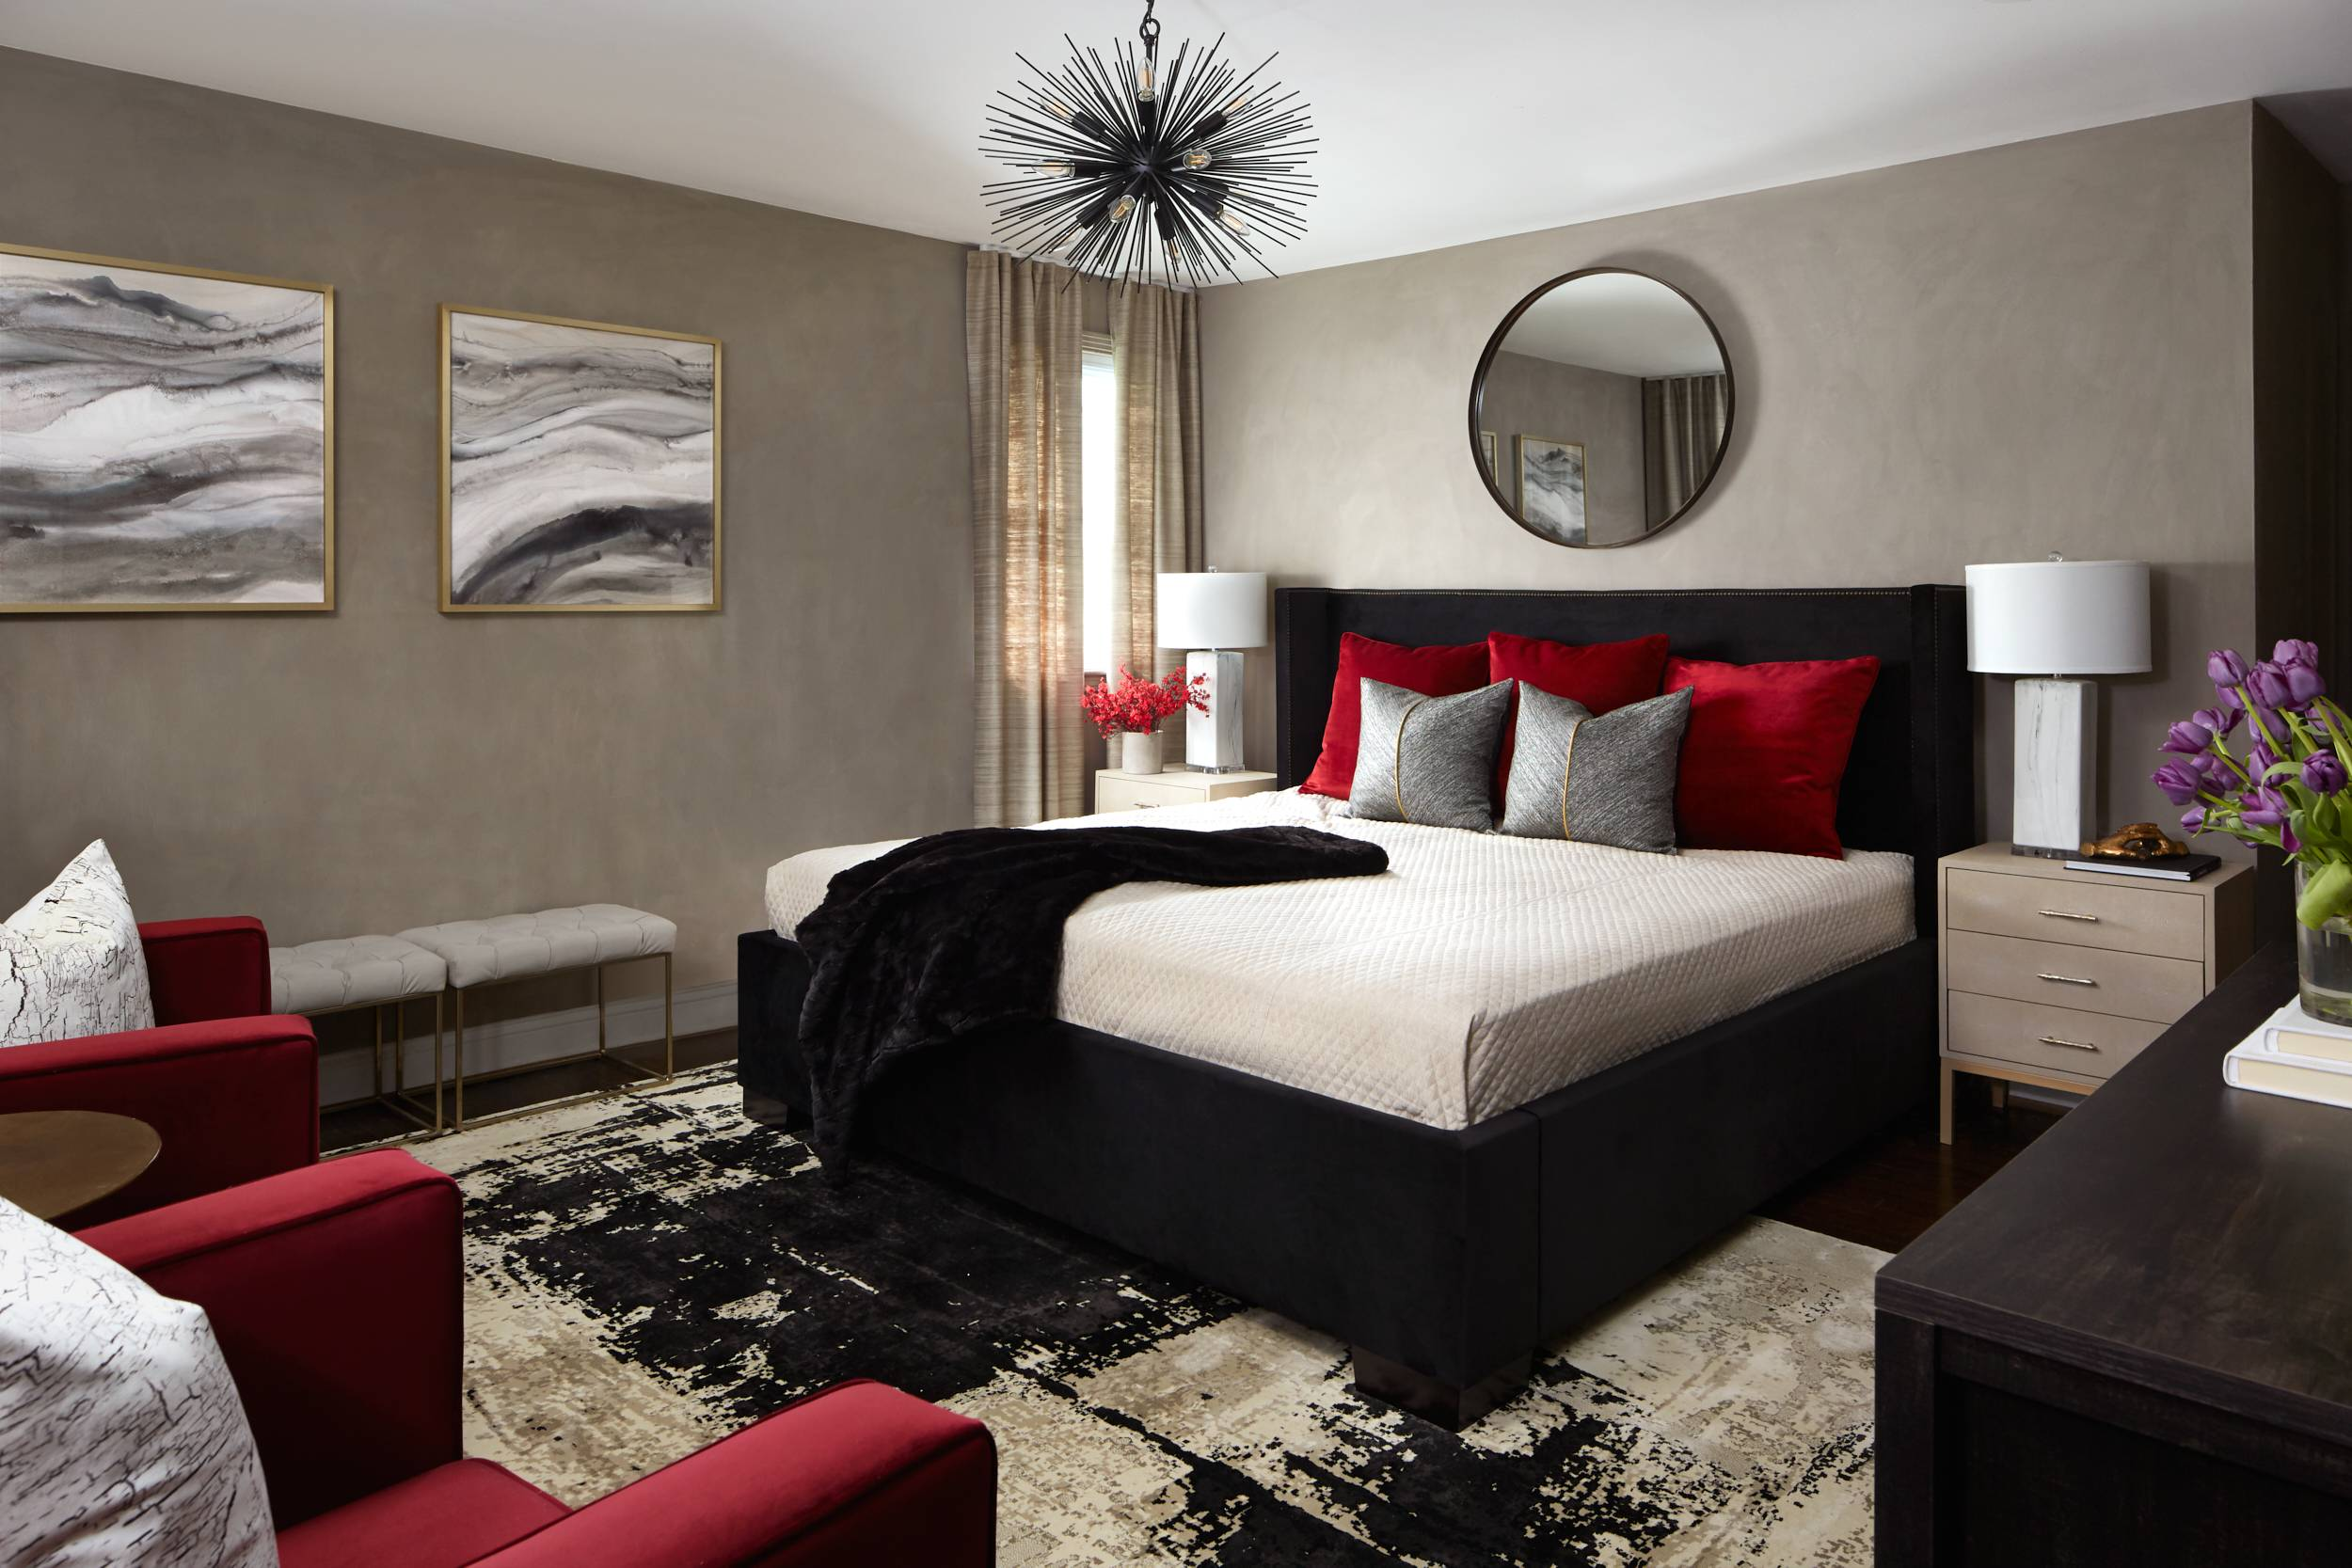 beige primary bedroom with black and red decor